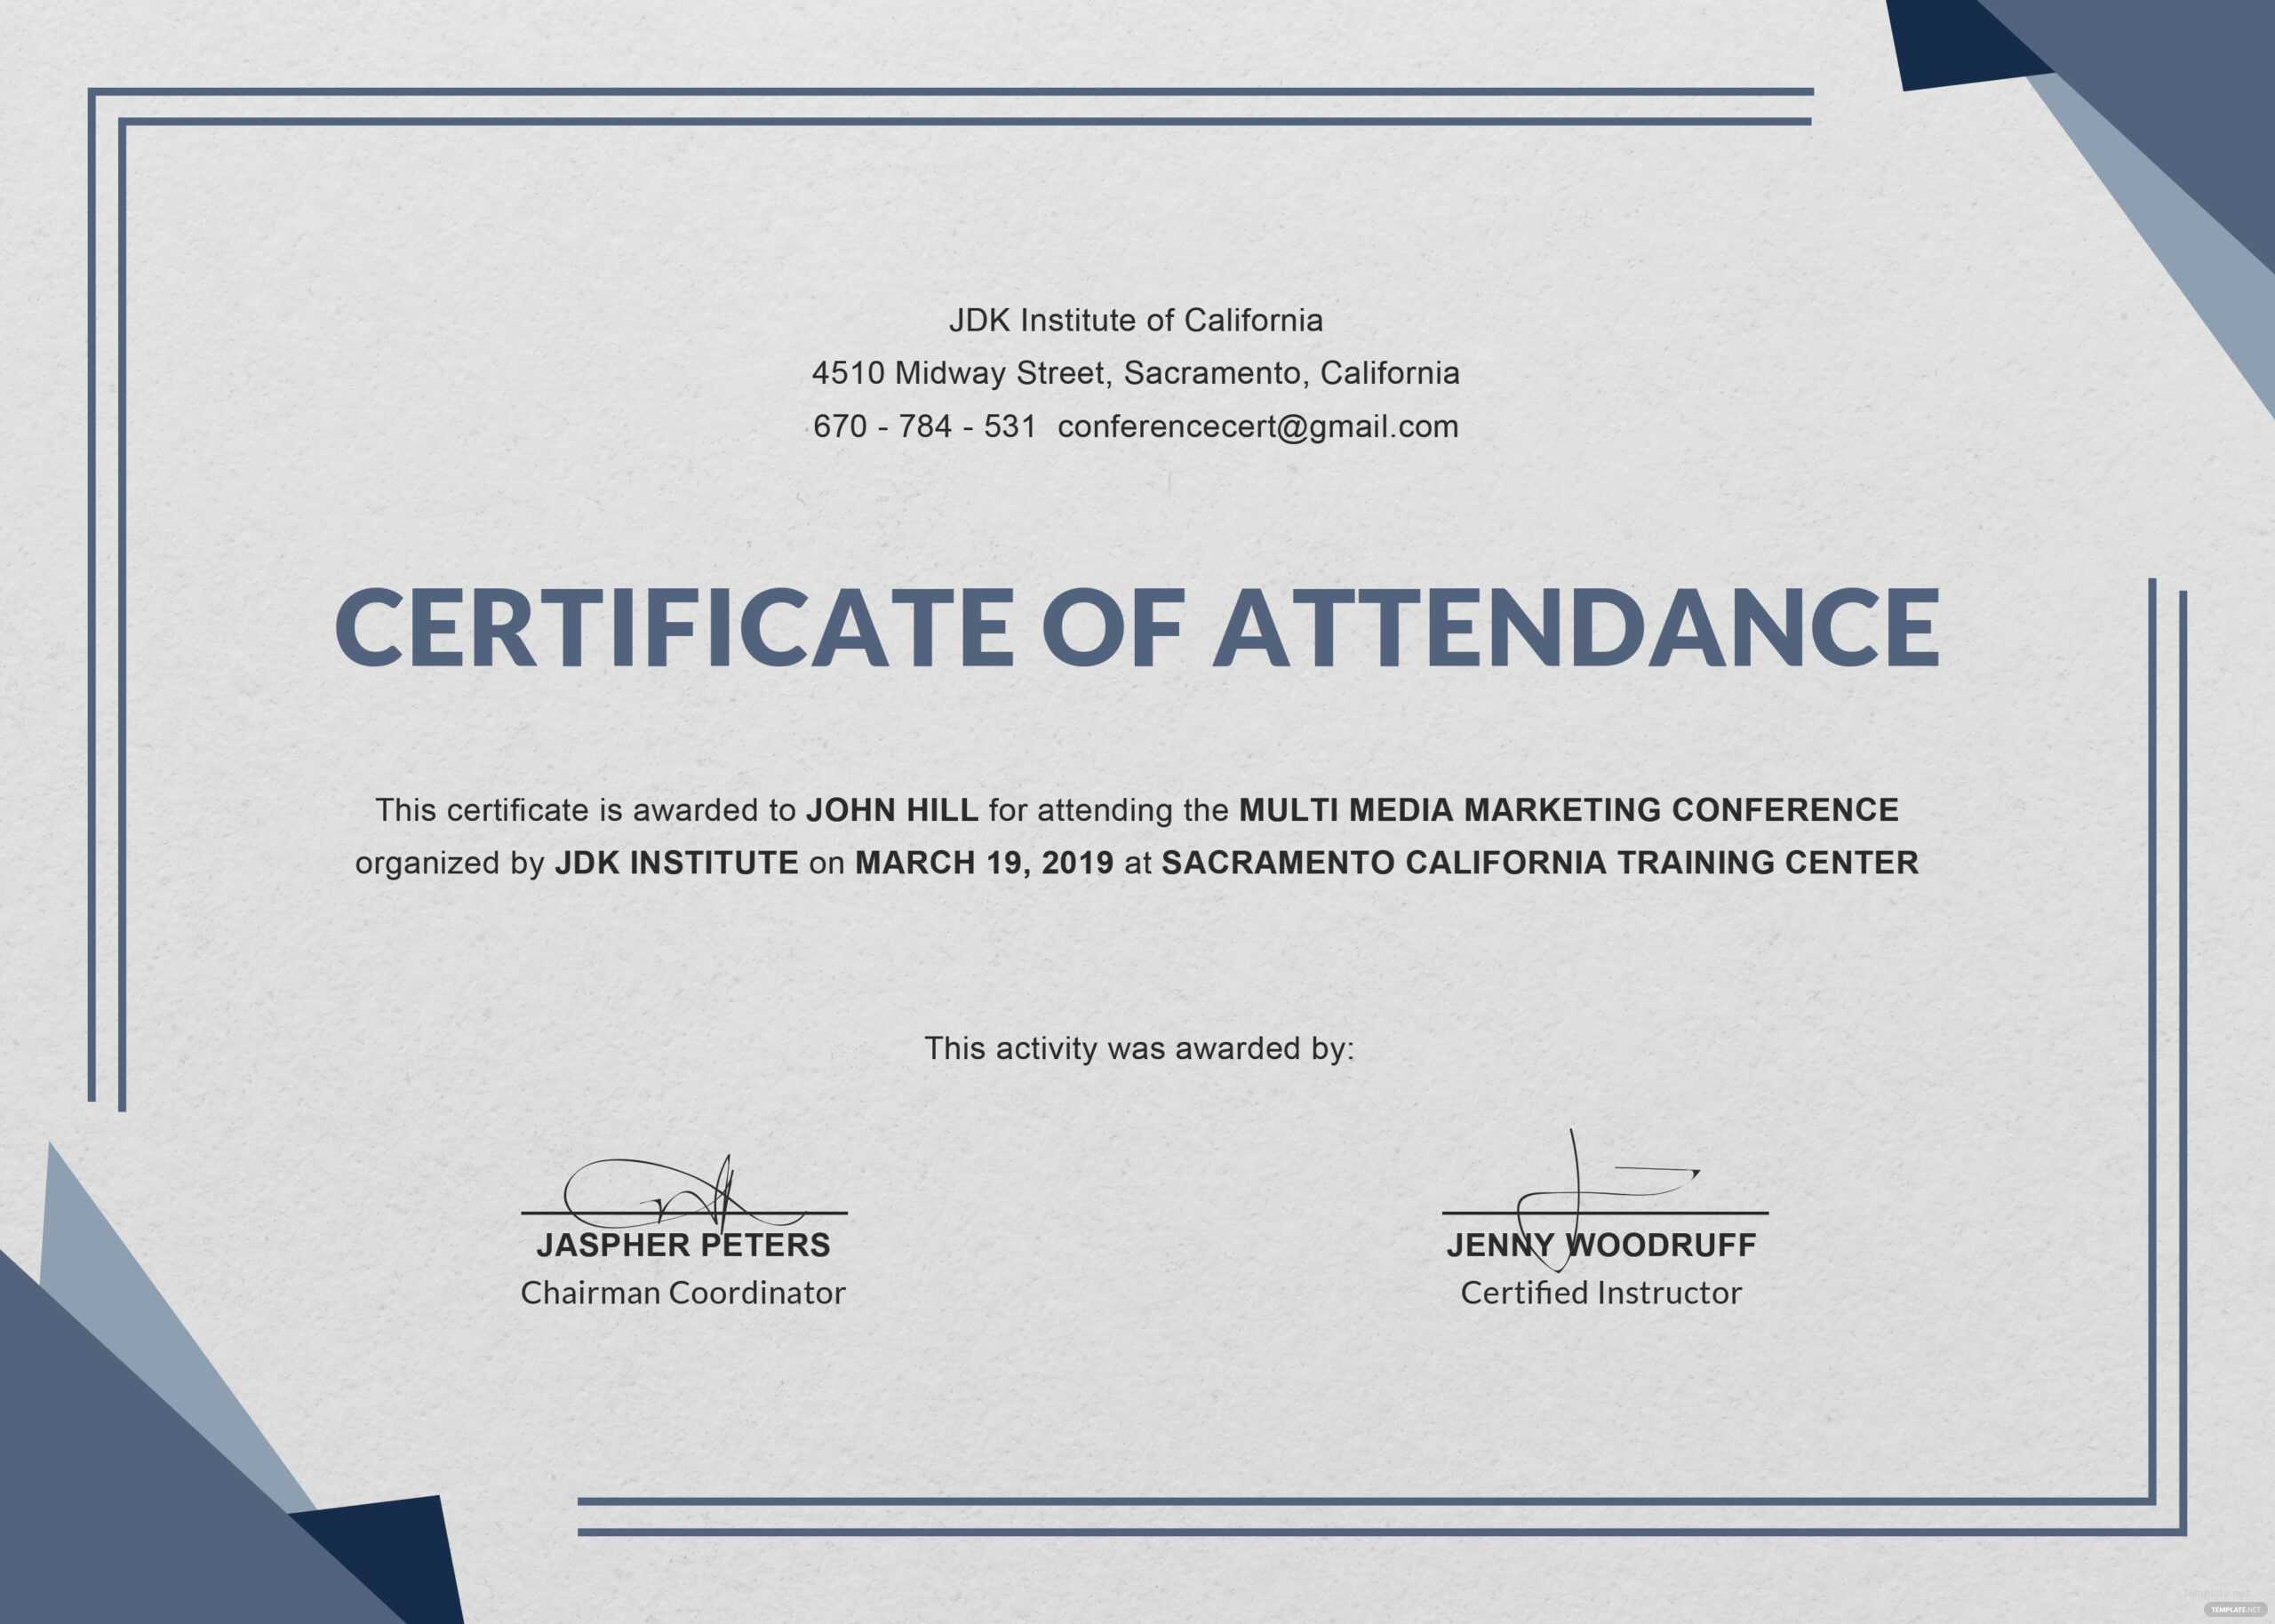 Attendance Certificate Template Free Perfect Employee Word with regard to Conference Certificate Of Attendance Template